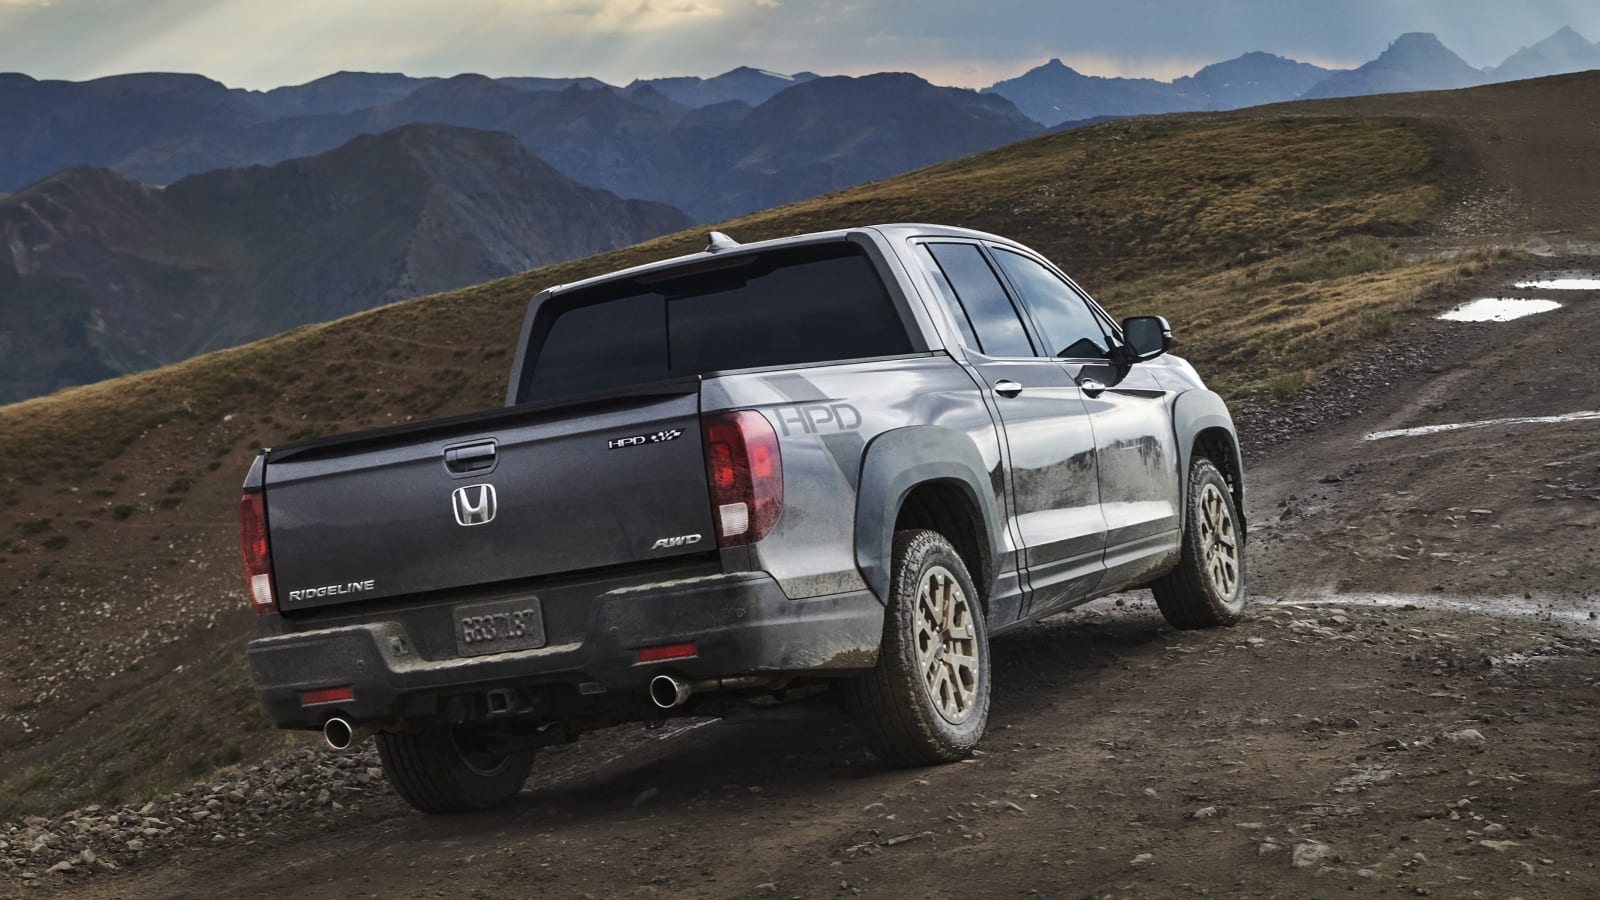 2021 honda ridgeline debuts with big design change autoblog 2021 honda ridgeline debuts with big